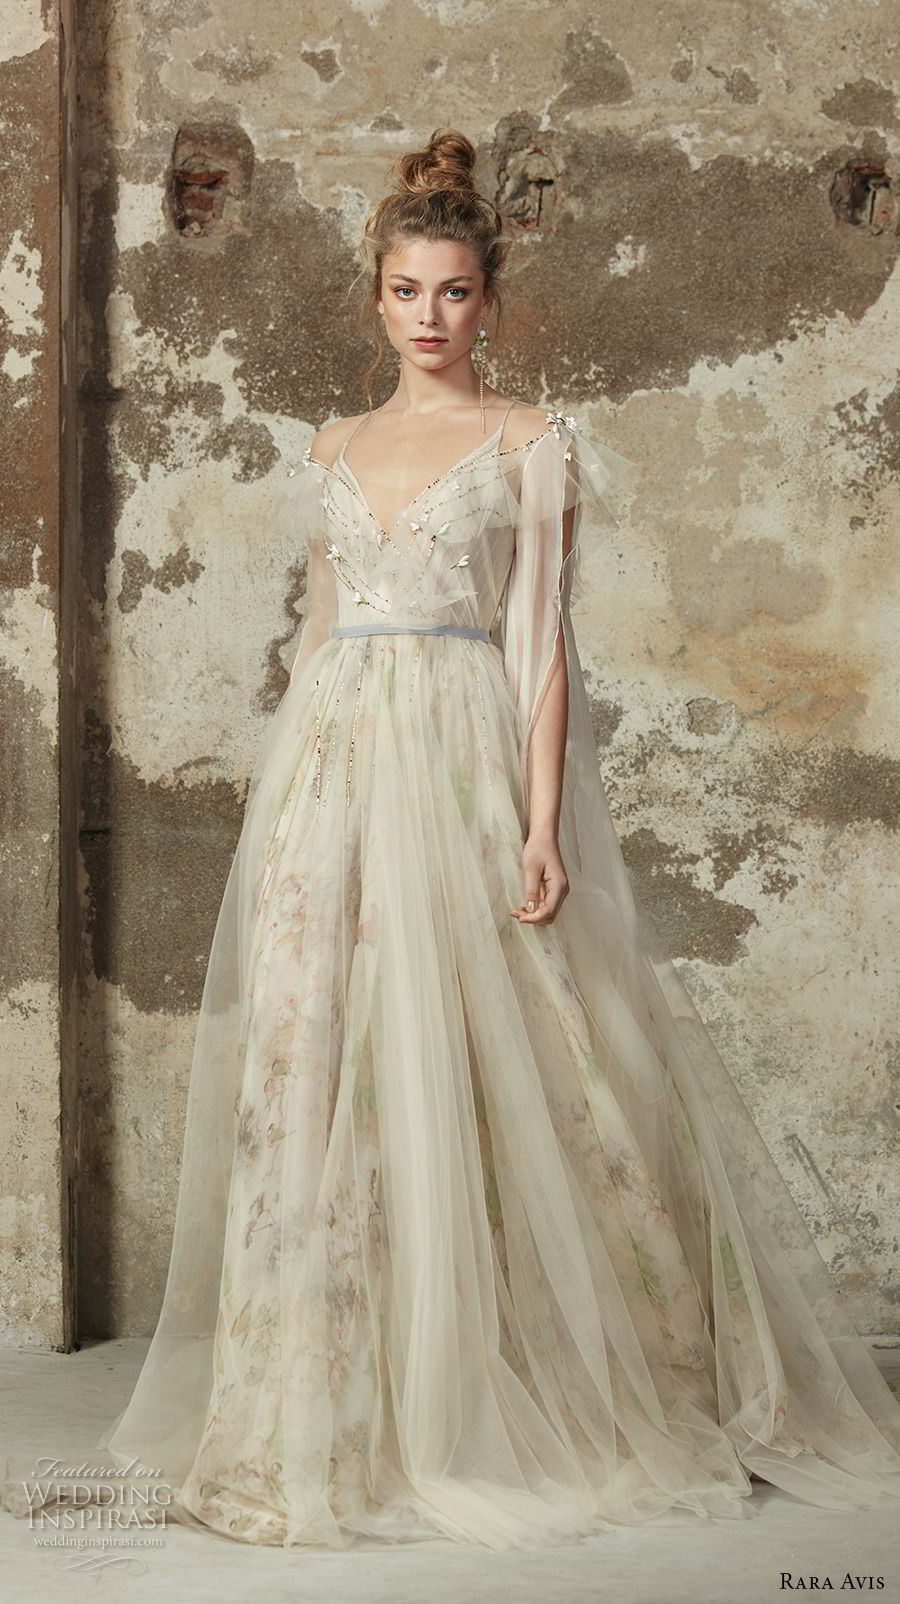 rara avis 2017 bridal hanging sleeves spaghetti strap deep sweetheart neckline tulle bodice tulle skirt champagne romantic soft a line wedding dress open back chapel train (5) mv